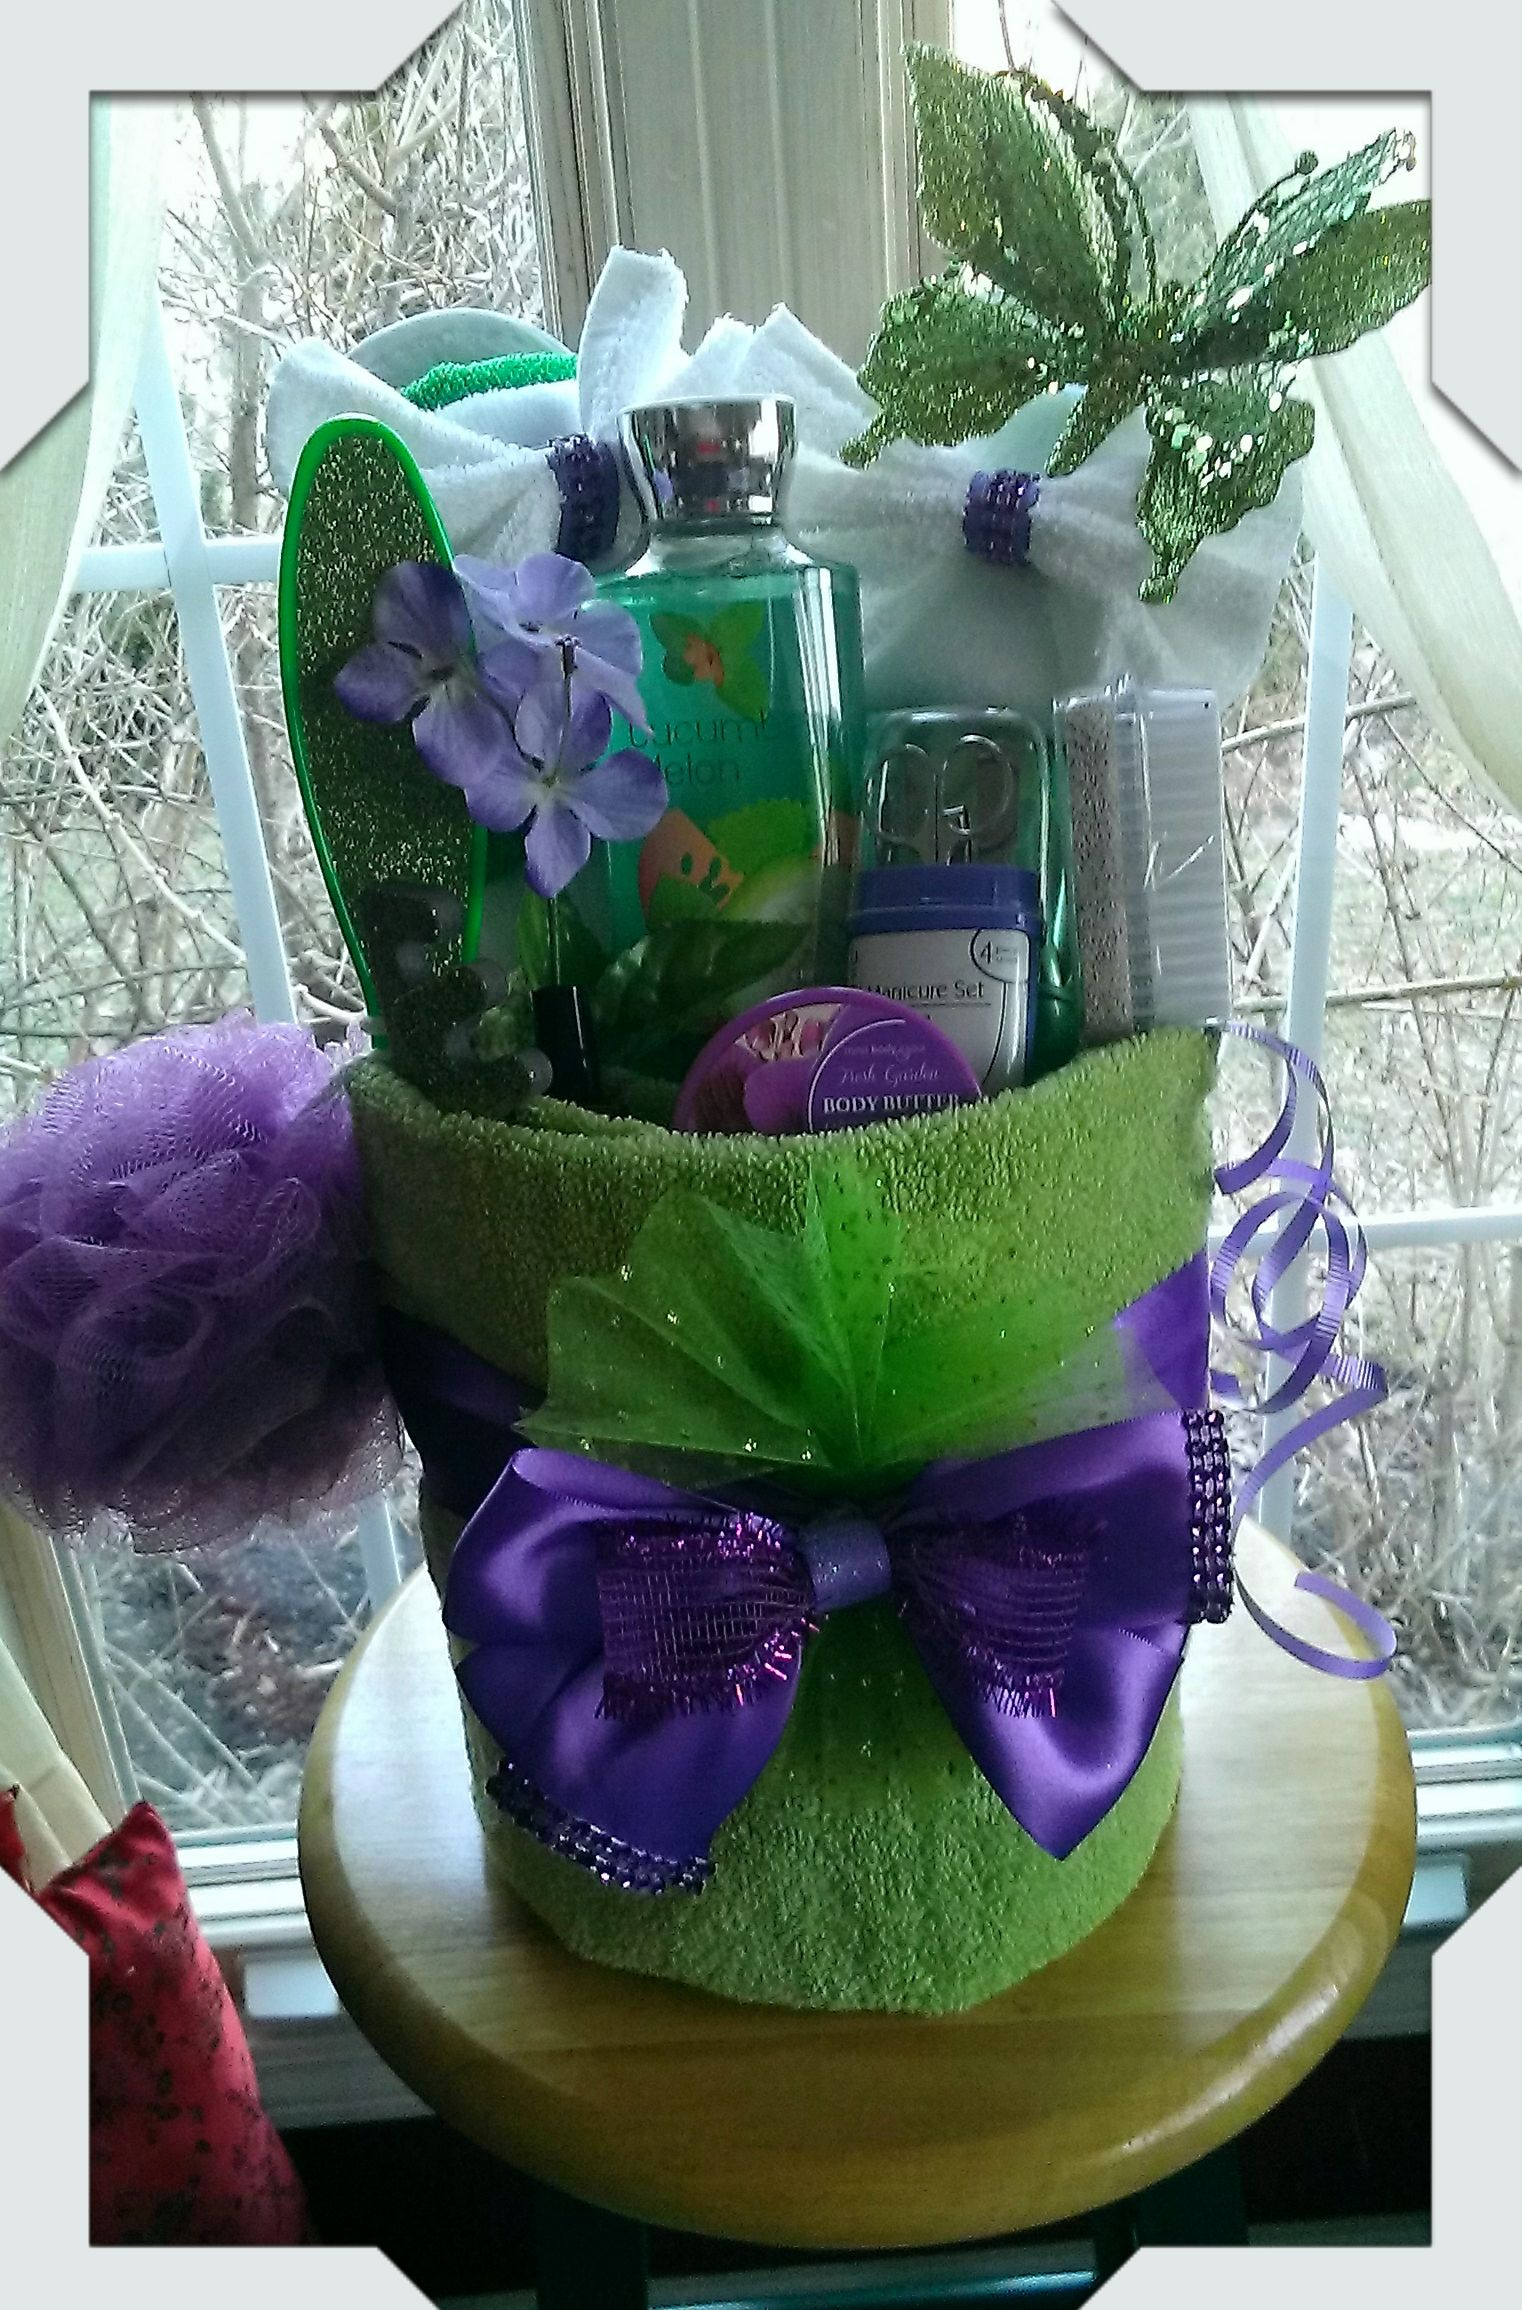 Towel Spa Gift Basket Made By Norma S Unique Gift Baskets 45 Bathroom Gifts Unique Gift Baskets Diy Spa Gifts